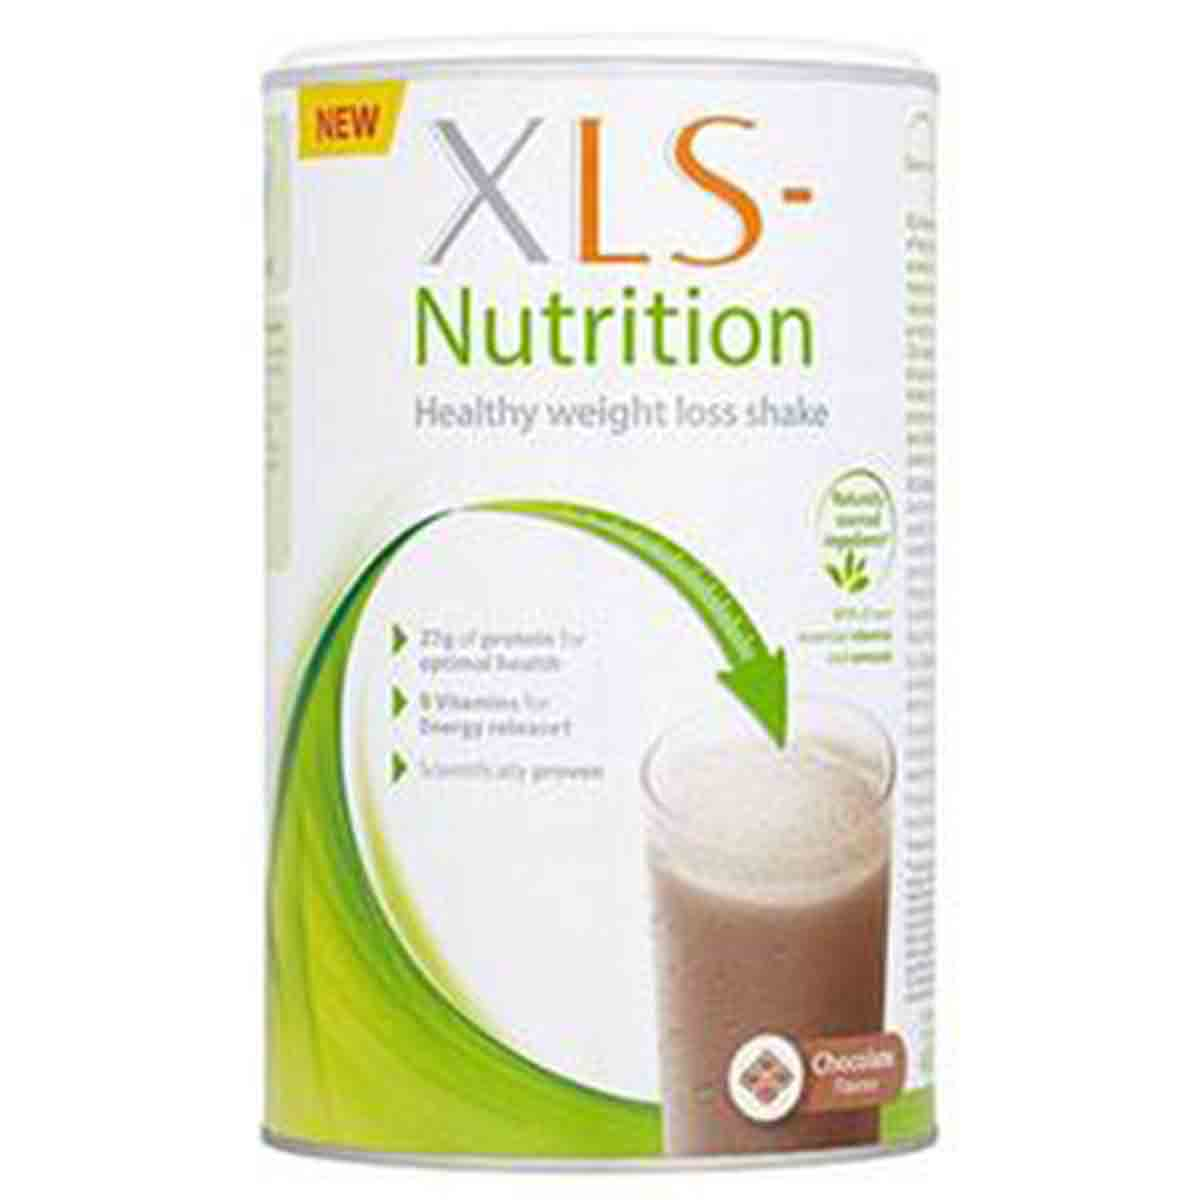 XLS-Nutrition Meal Replacement Shake